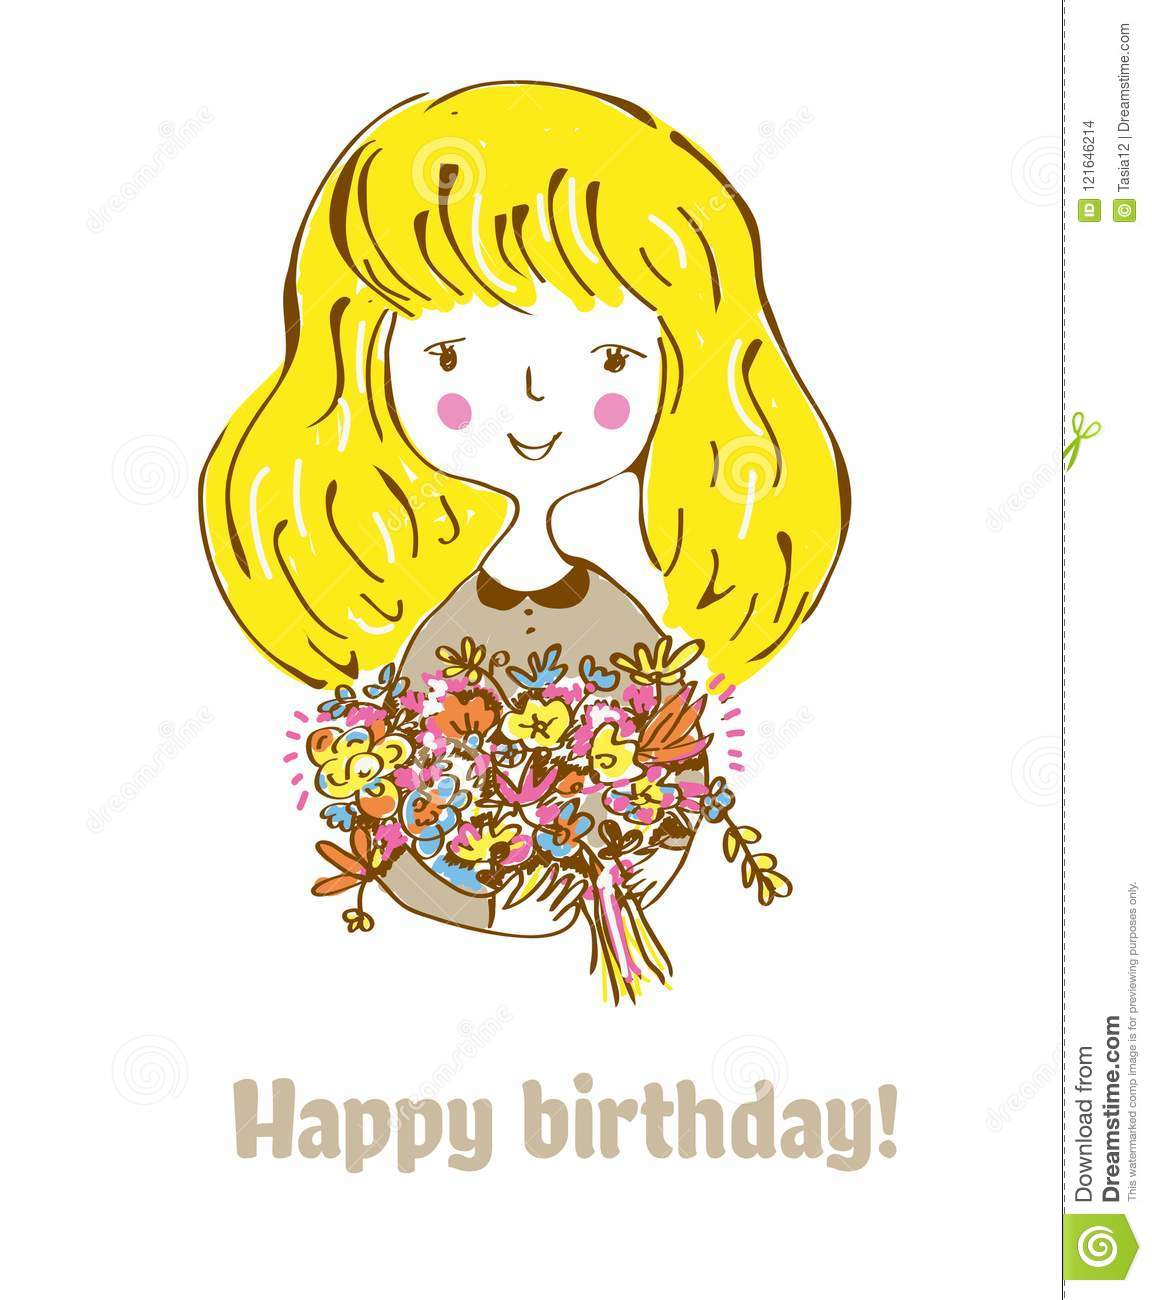 Birthday Card With Girl And Flowers For Child Retro Style Vector